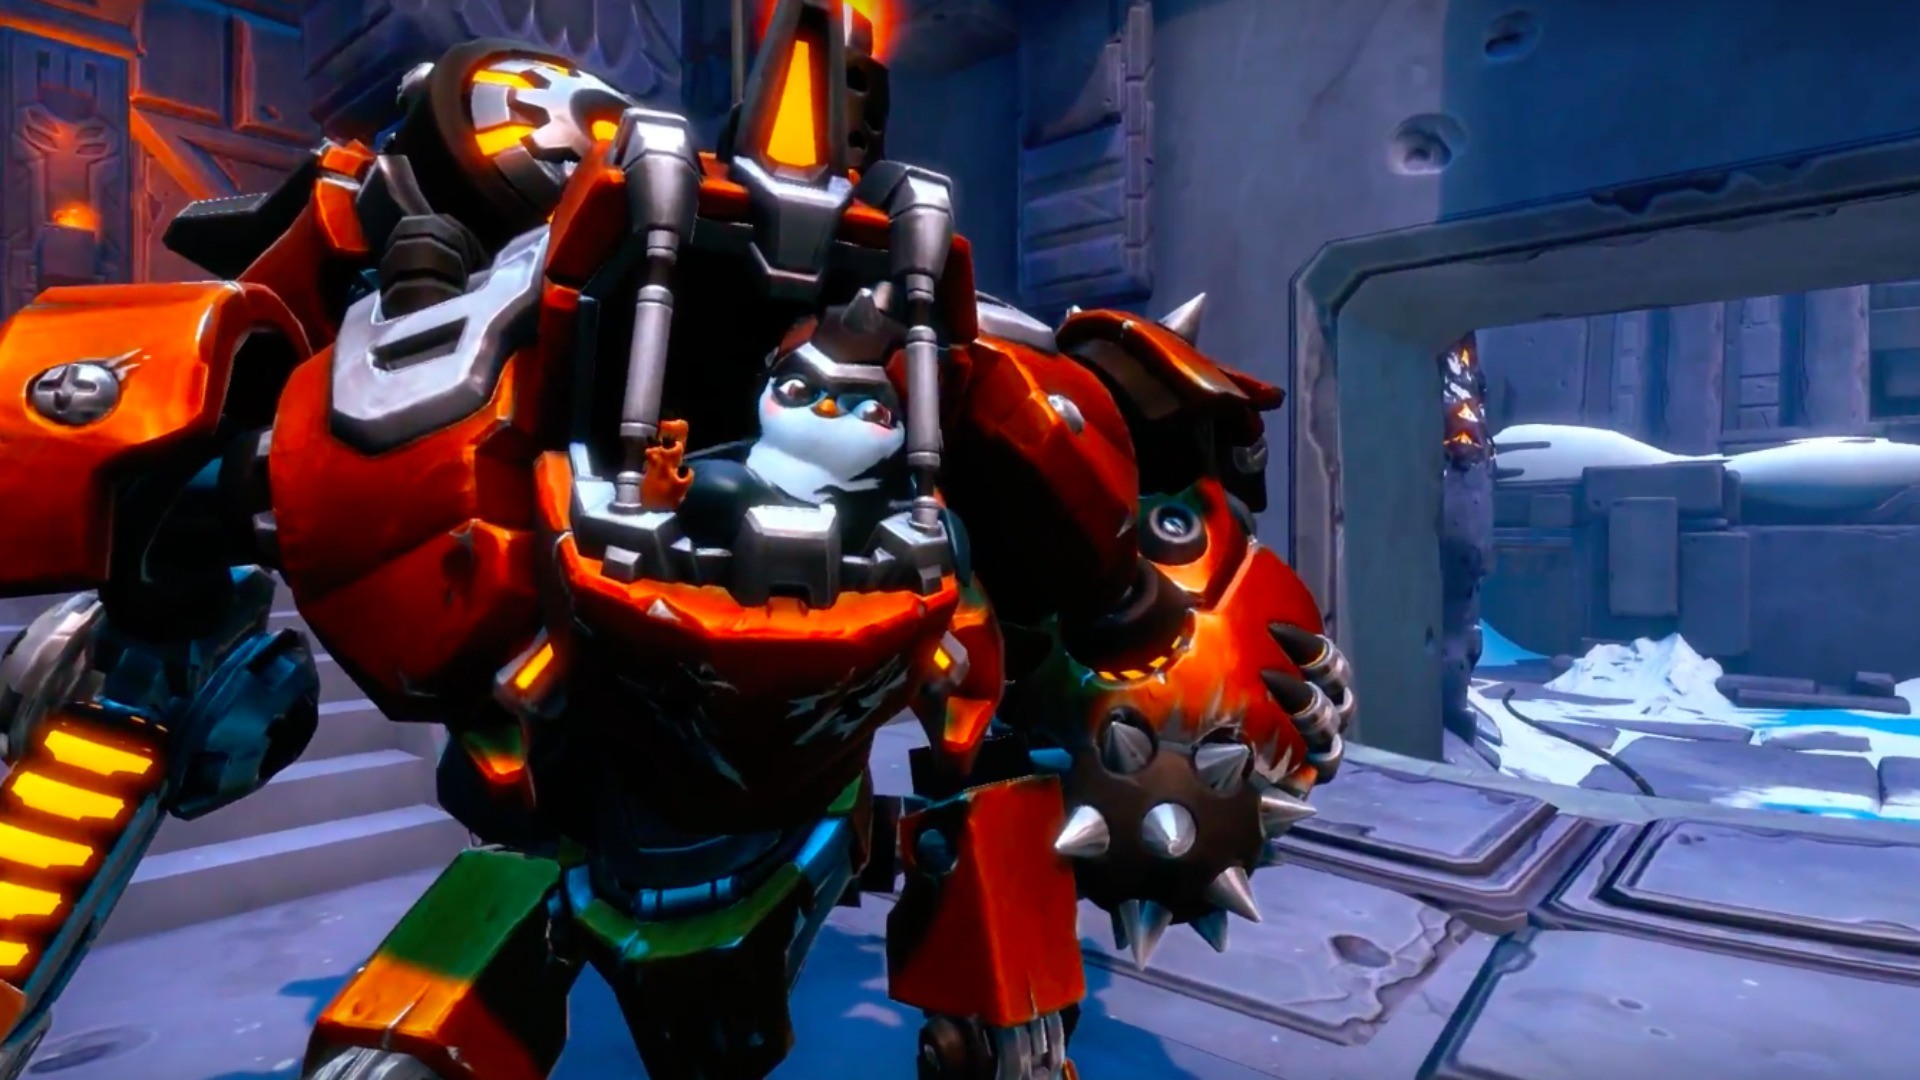 Battleborn Launch Trailer Teases Big Release